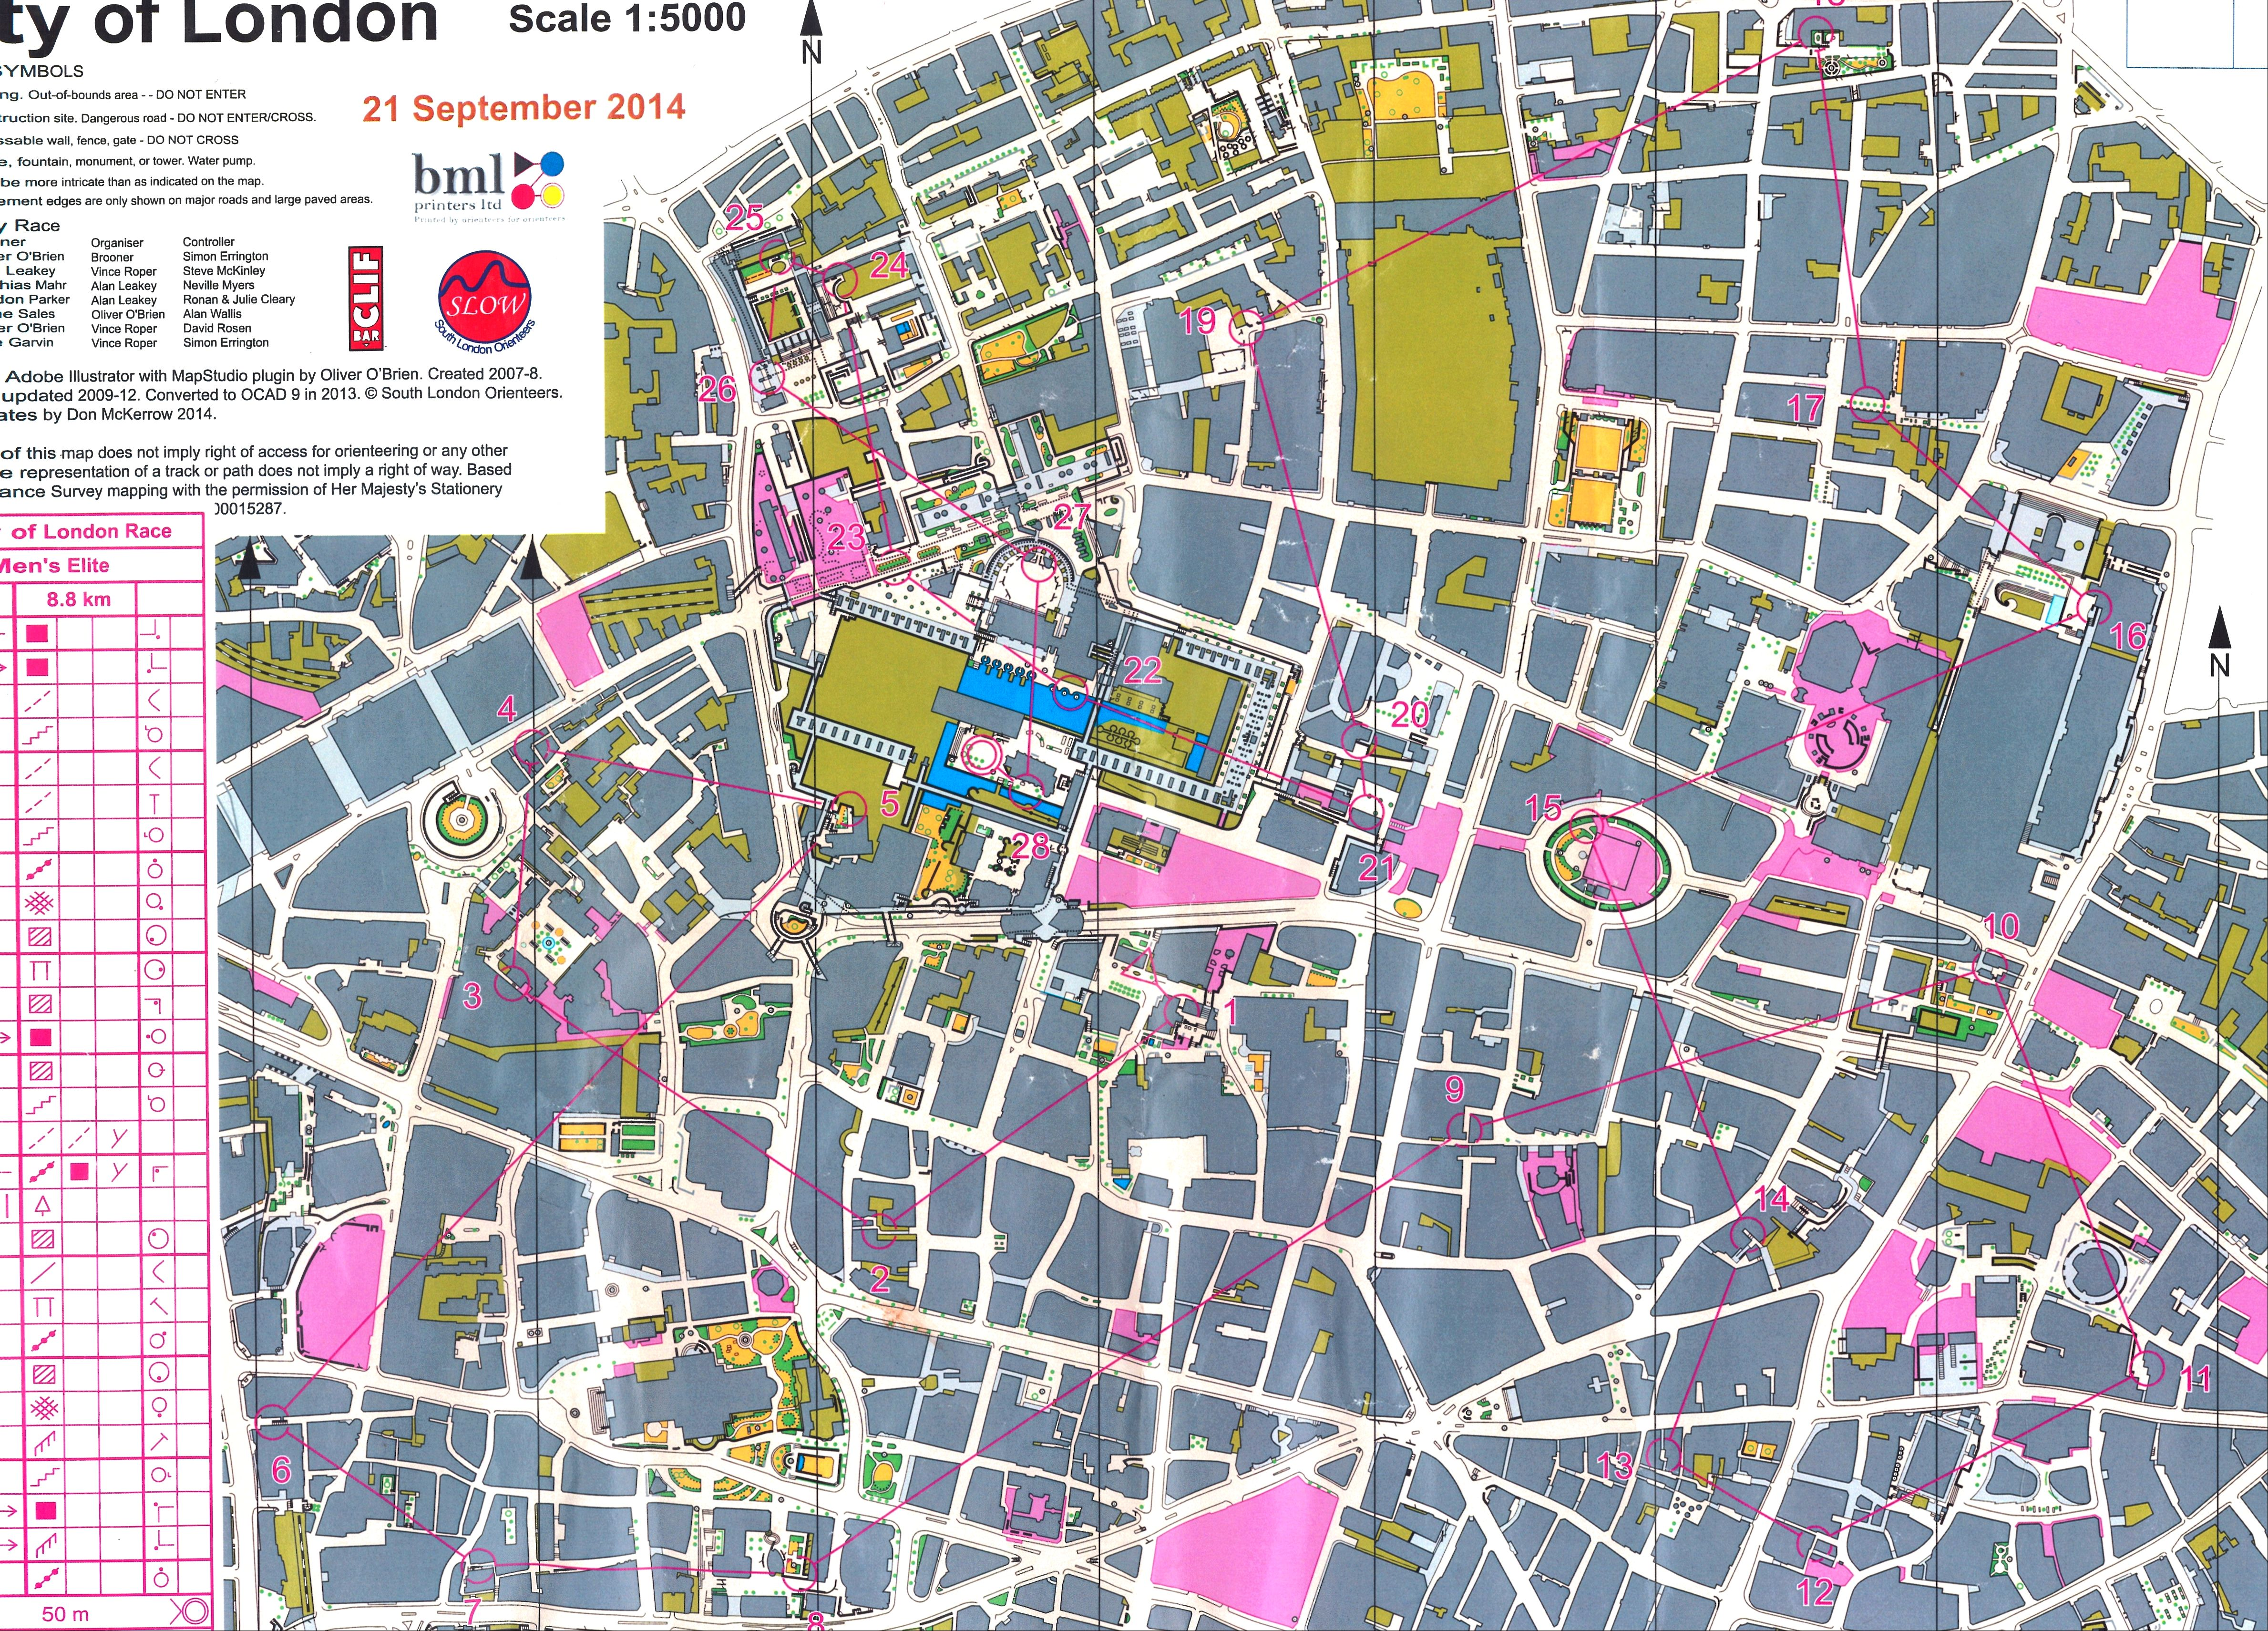 London City Race (2014) (13.02.2016)